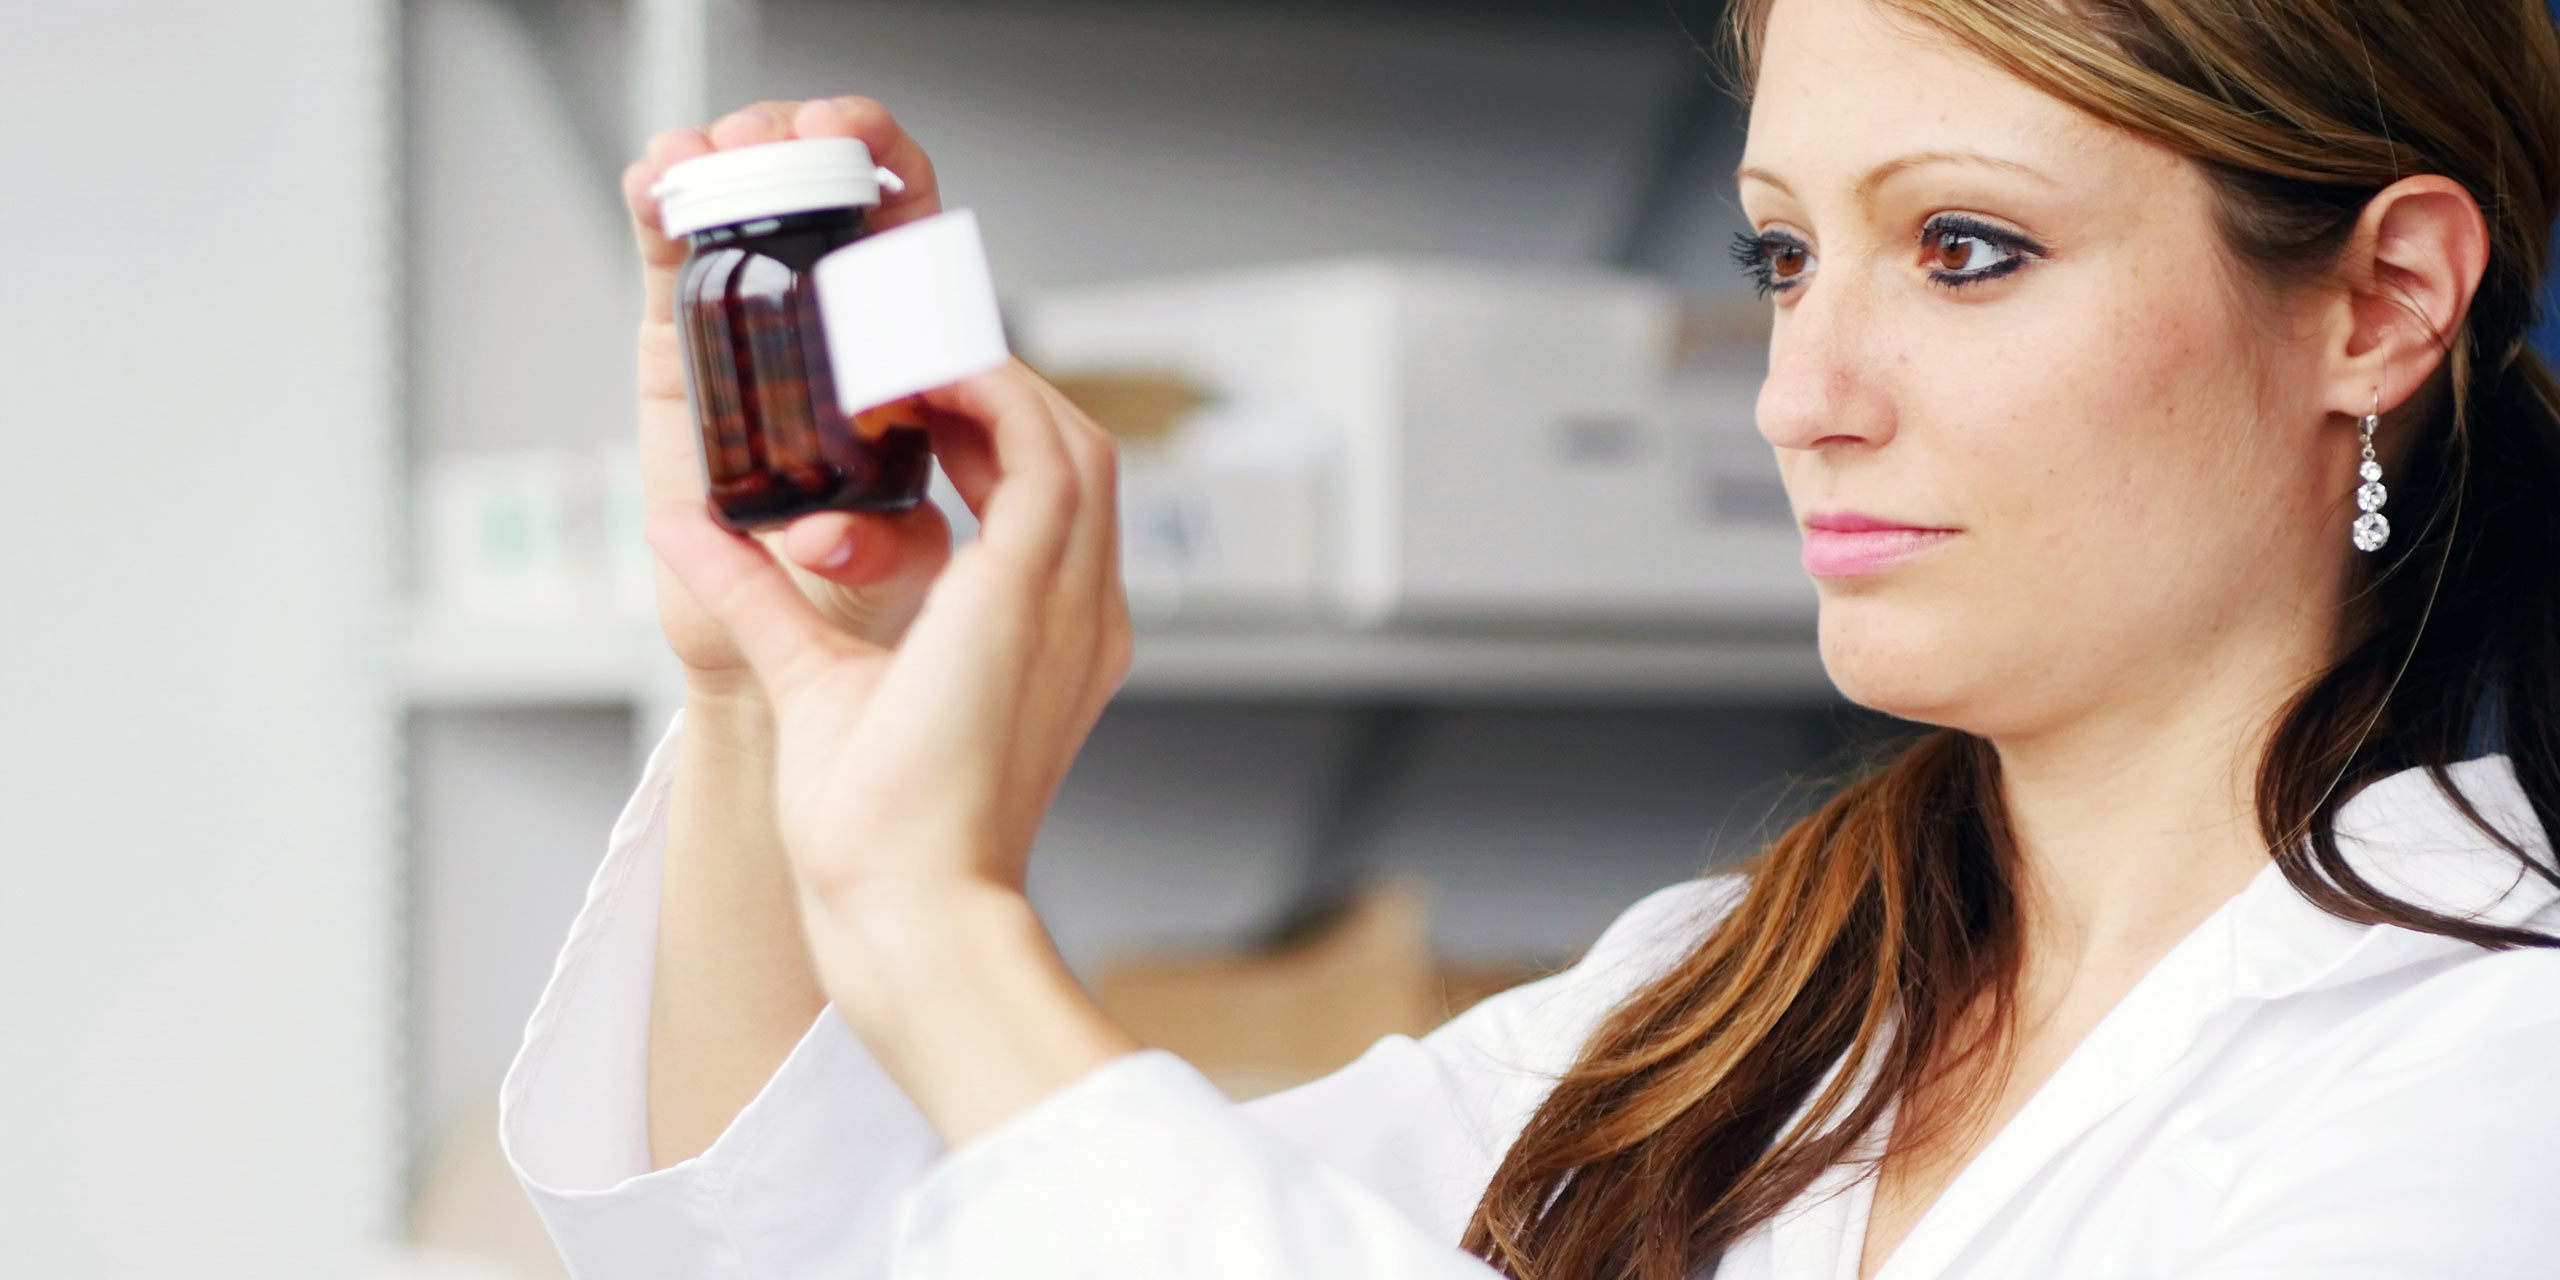 Pharmacist looking at medicine bottle